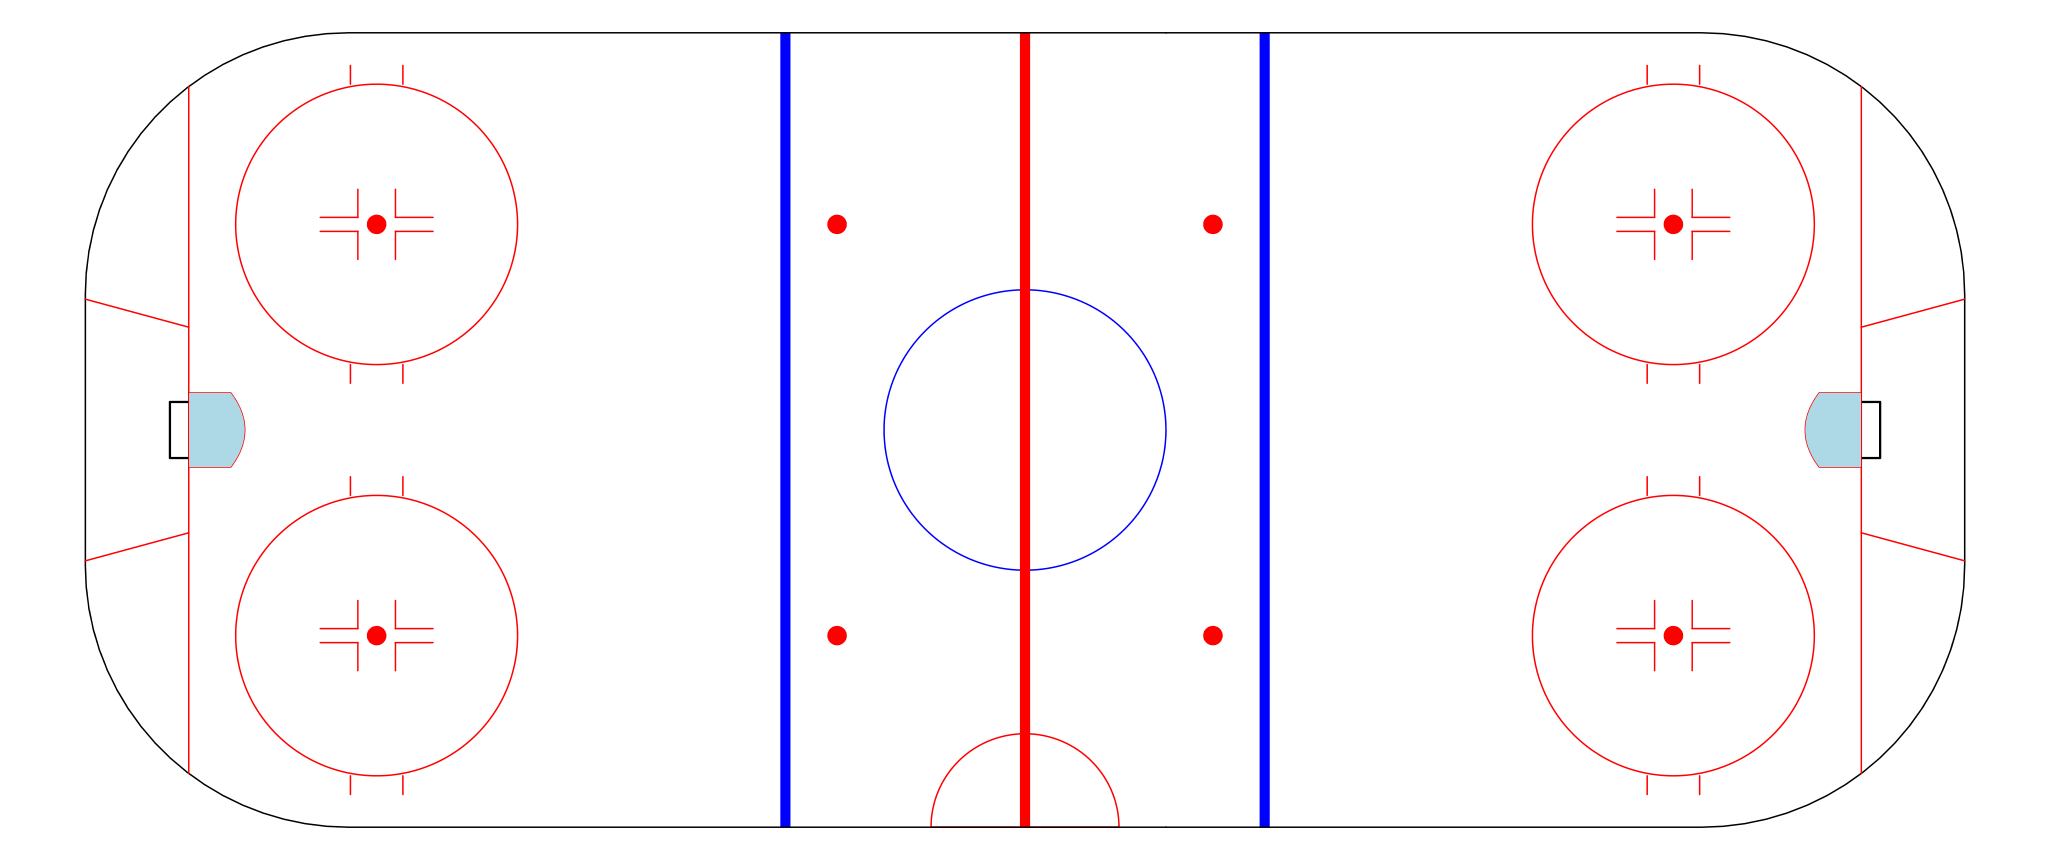 nhl hockey rink diagram printable rip current make your own plot in r war on ice the blog plotting elements for proper faceoff circle function x y theta seq 0 2 pi length 300 outer polygon 15 cos